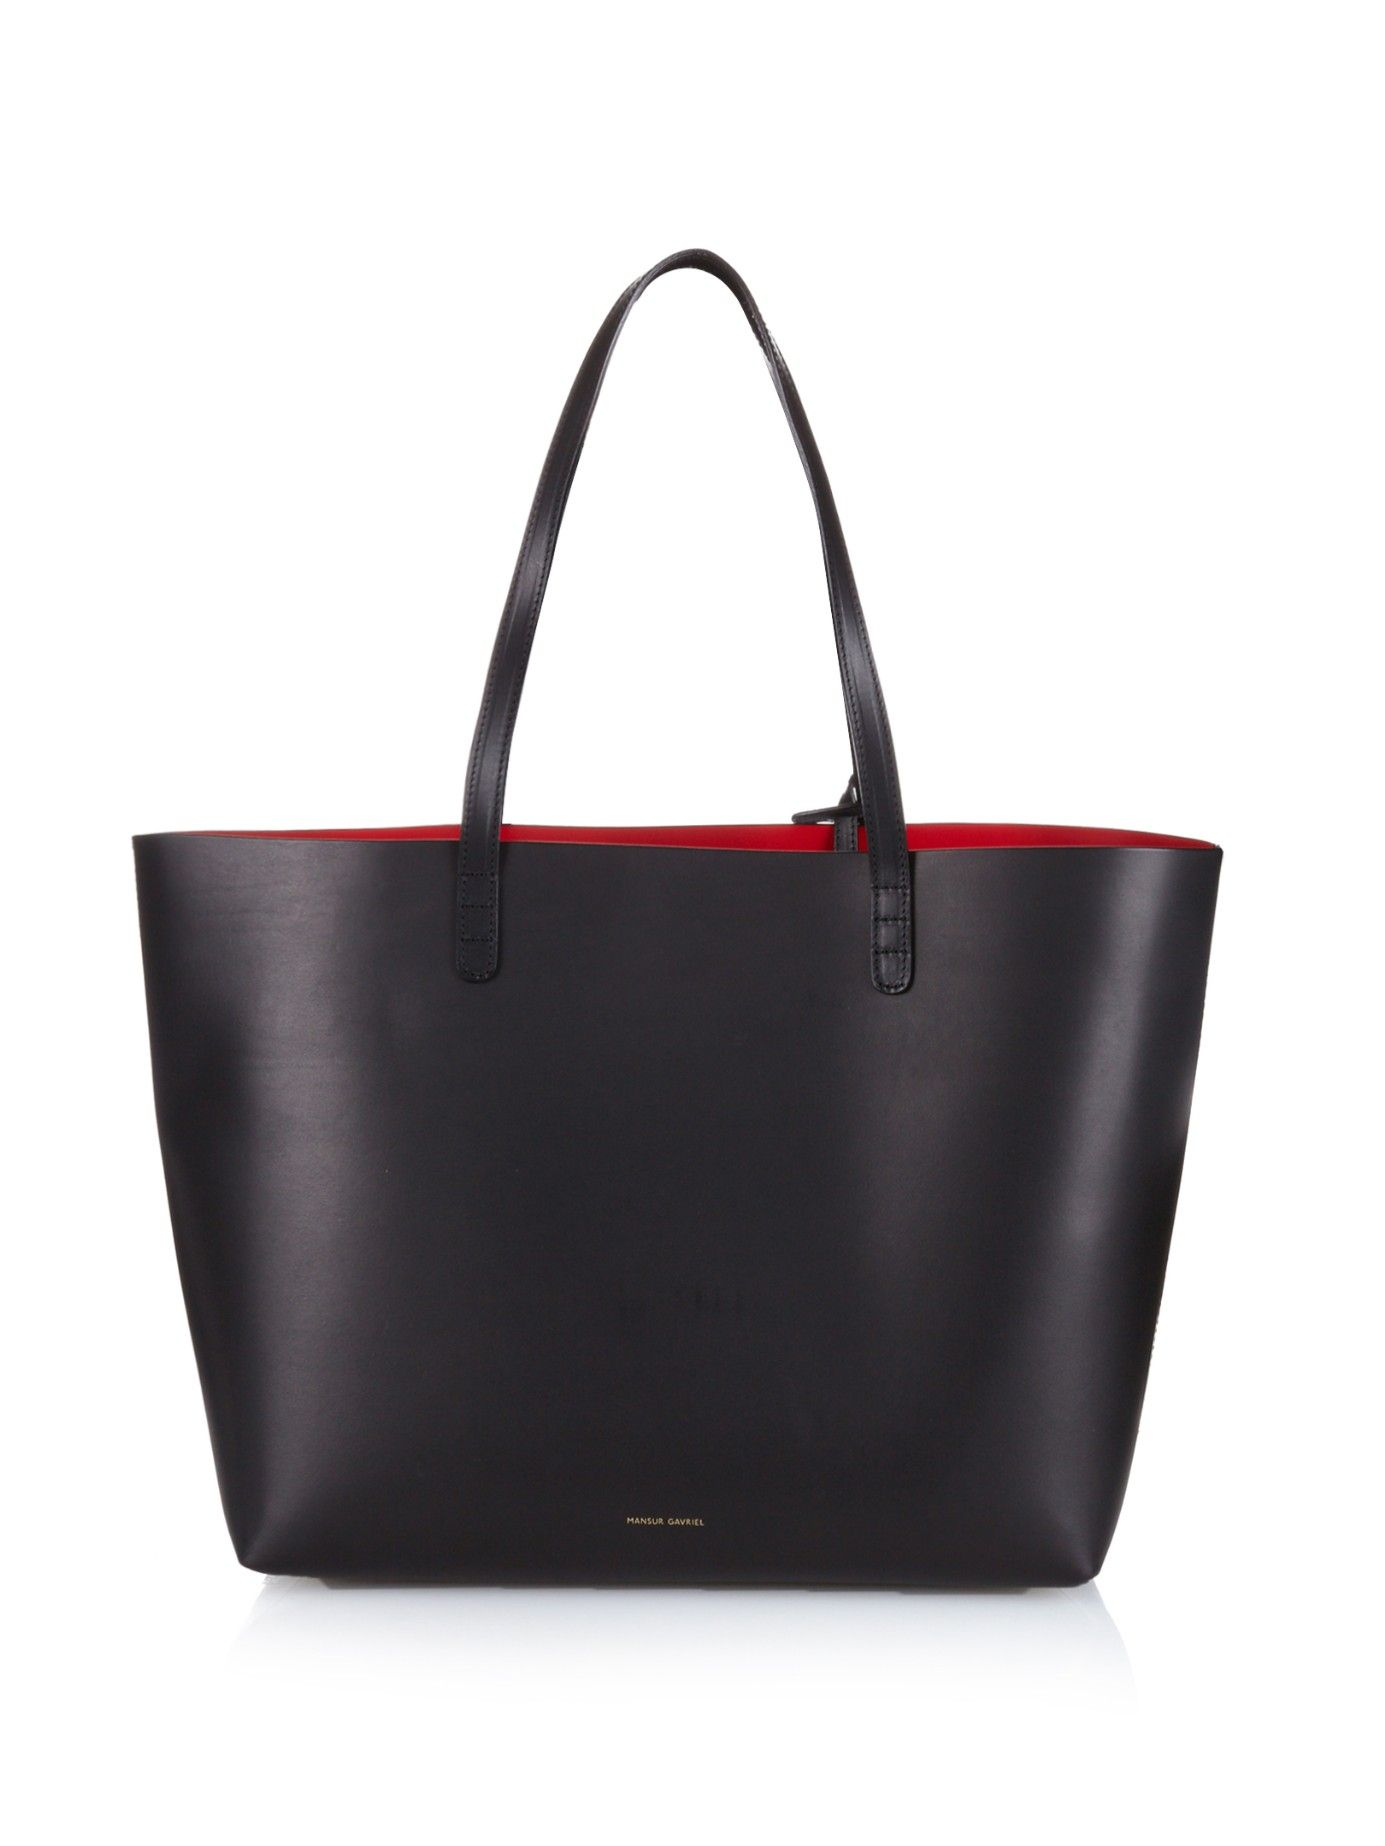 Silver leather tote bag uk - Large Red Lined Leather Tote Mansur Gavriel Matchesfashion Com Uk